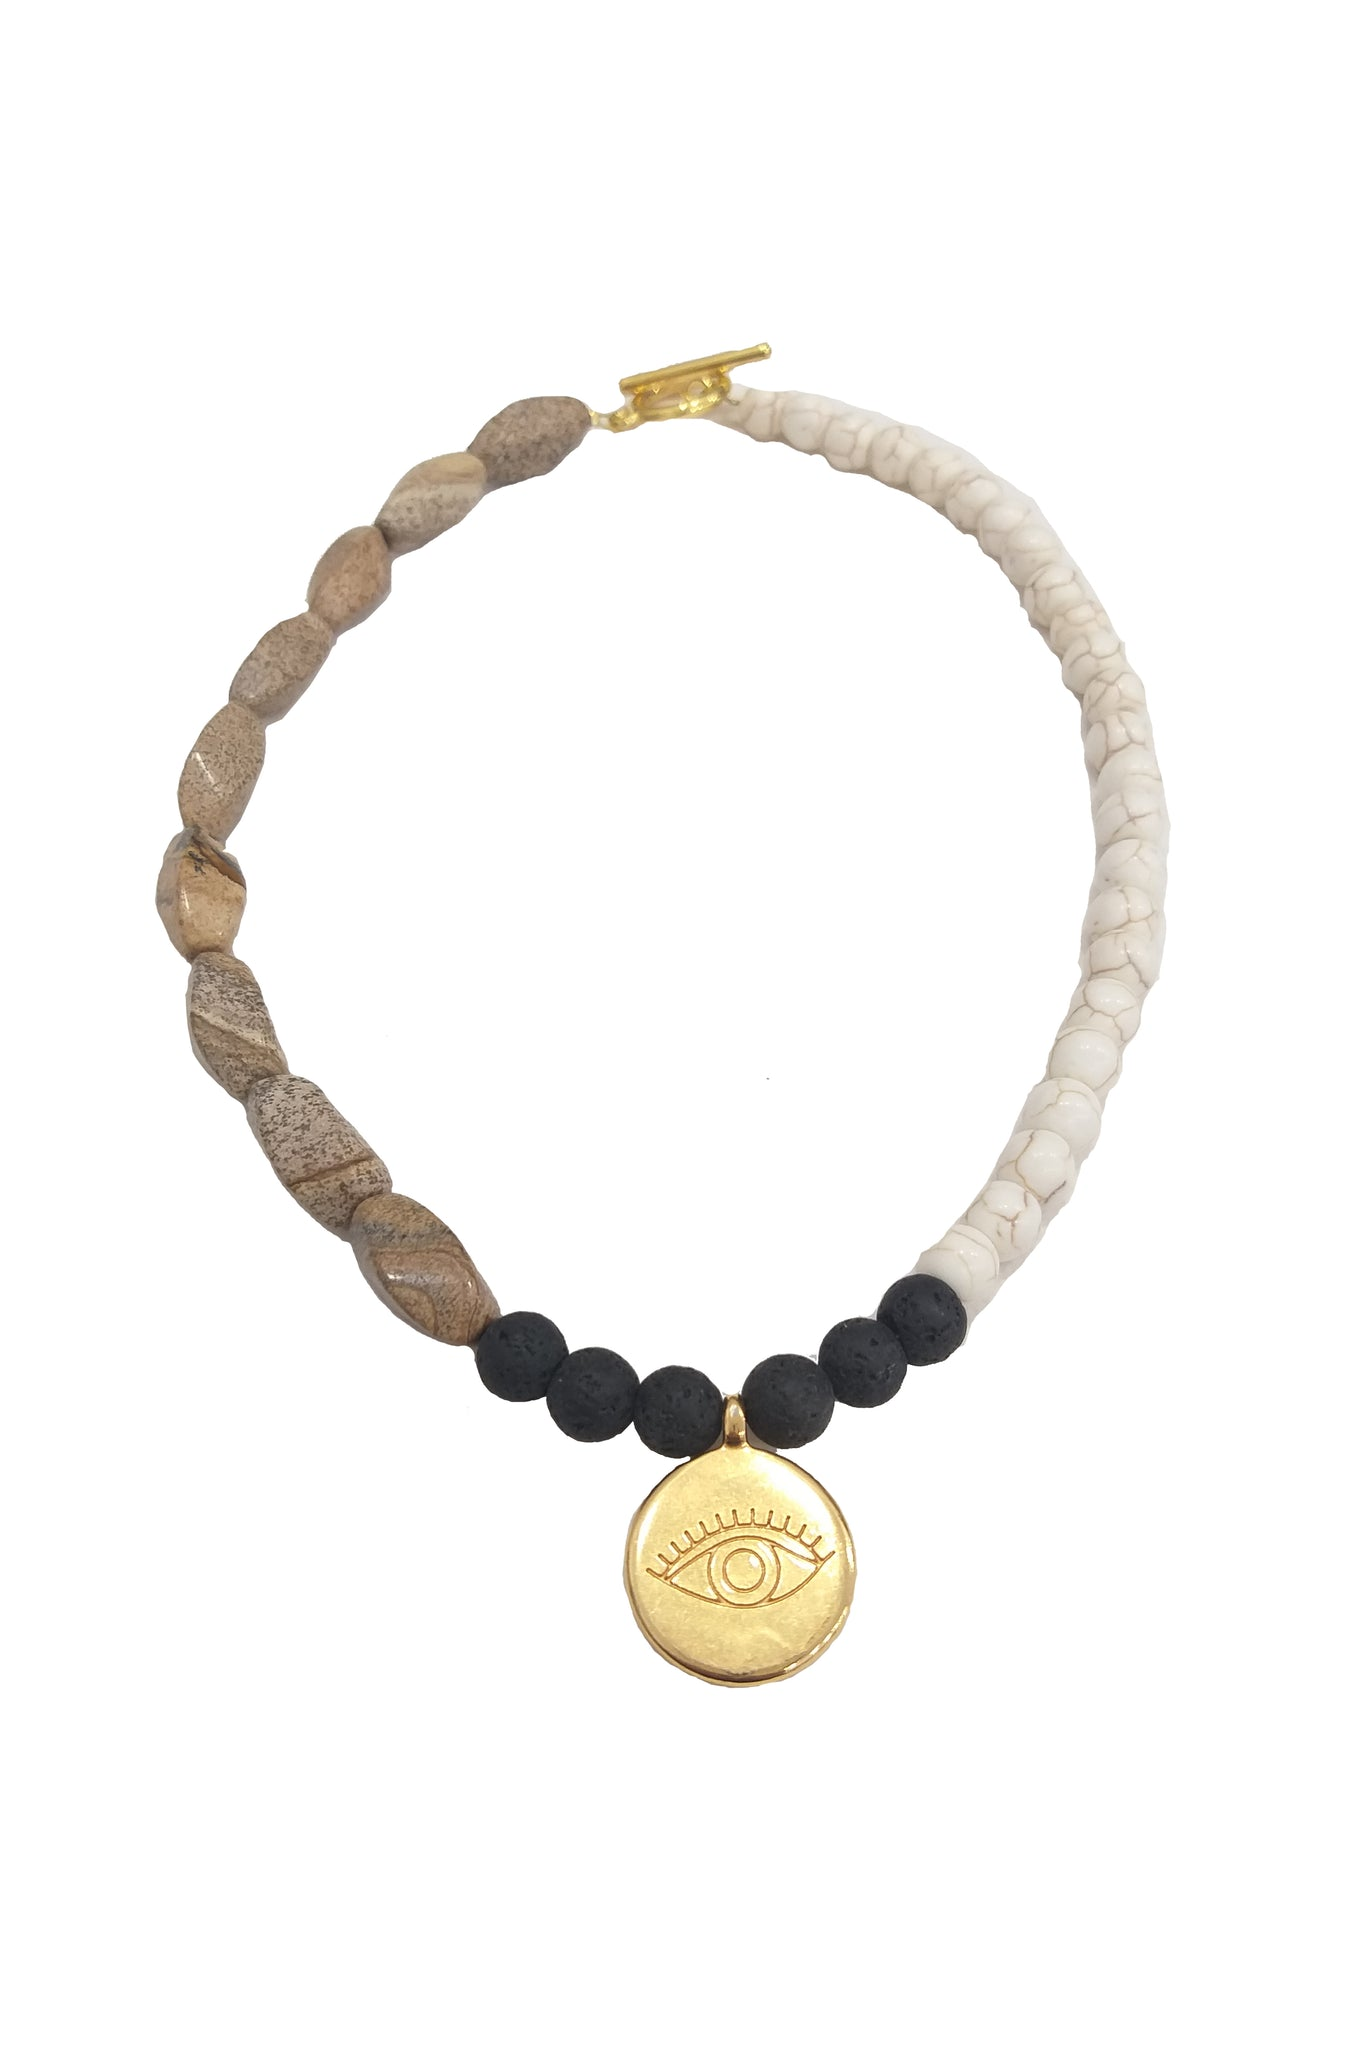 Natural tones and stones necklace - Sofi Moukidou